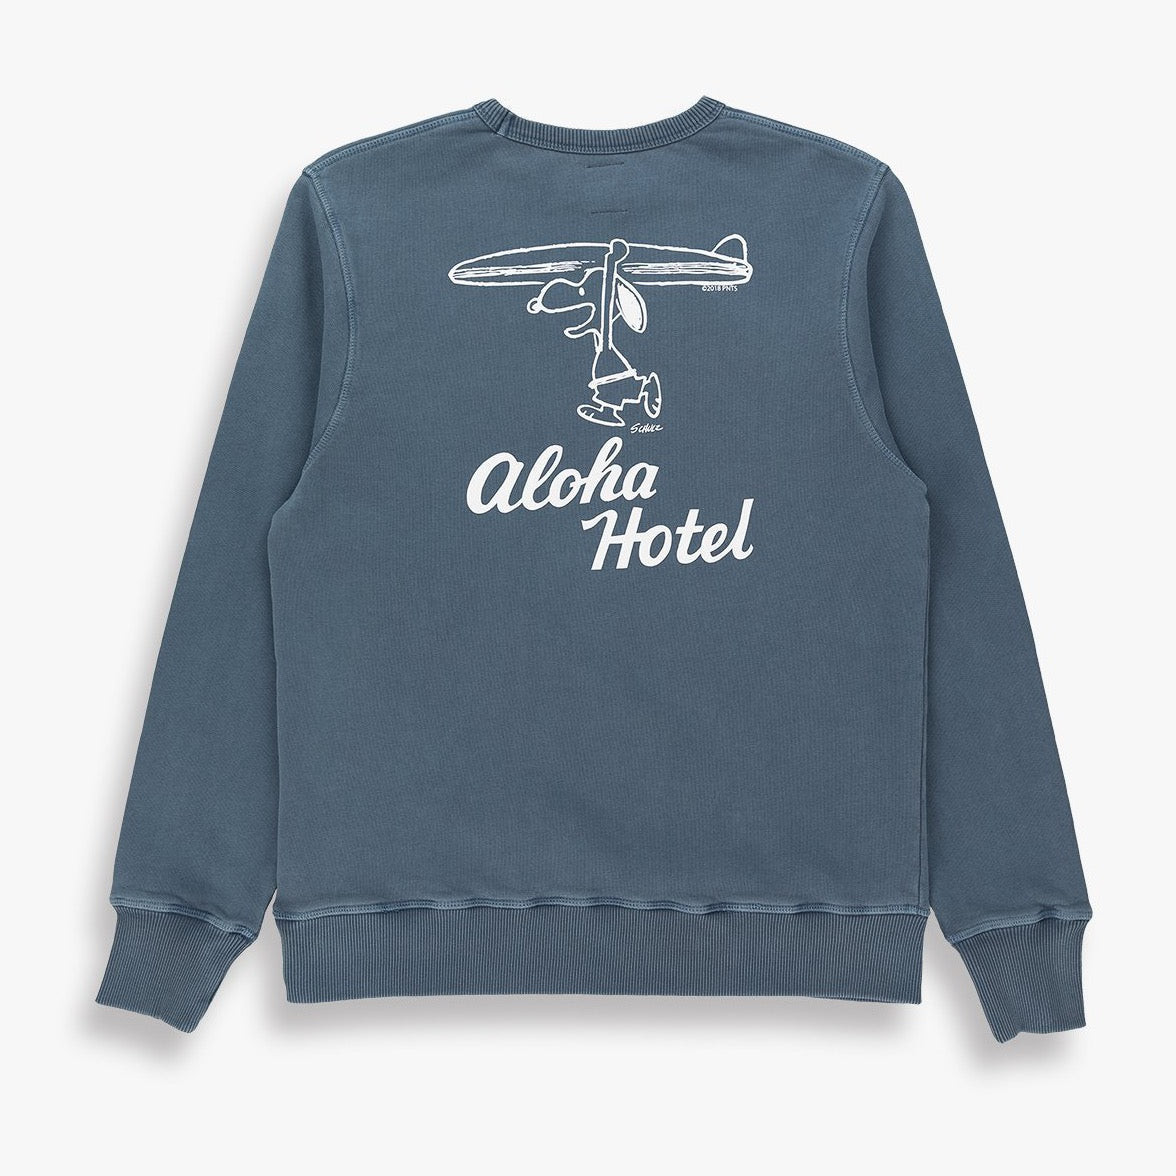 Gray TSPTR Aloha Snoopy Sweatshirt. Design of Snoopy holding a surfboard with the text aloha hotel underneath him.